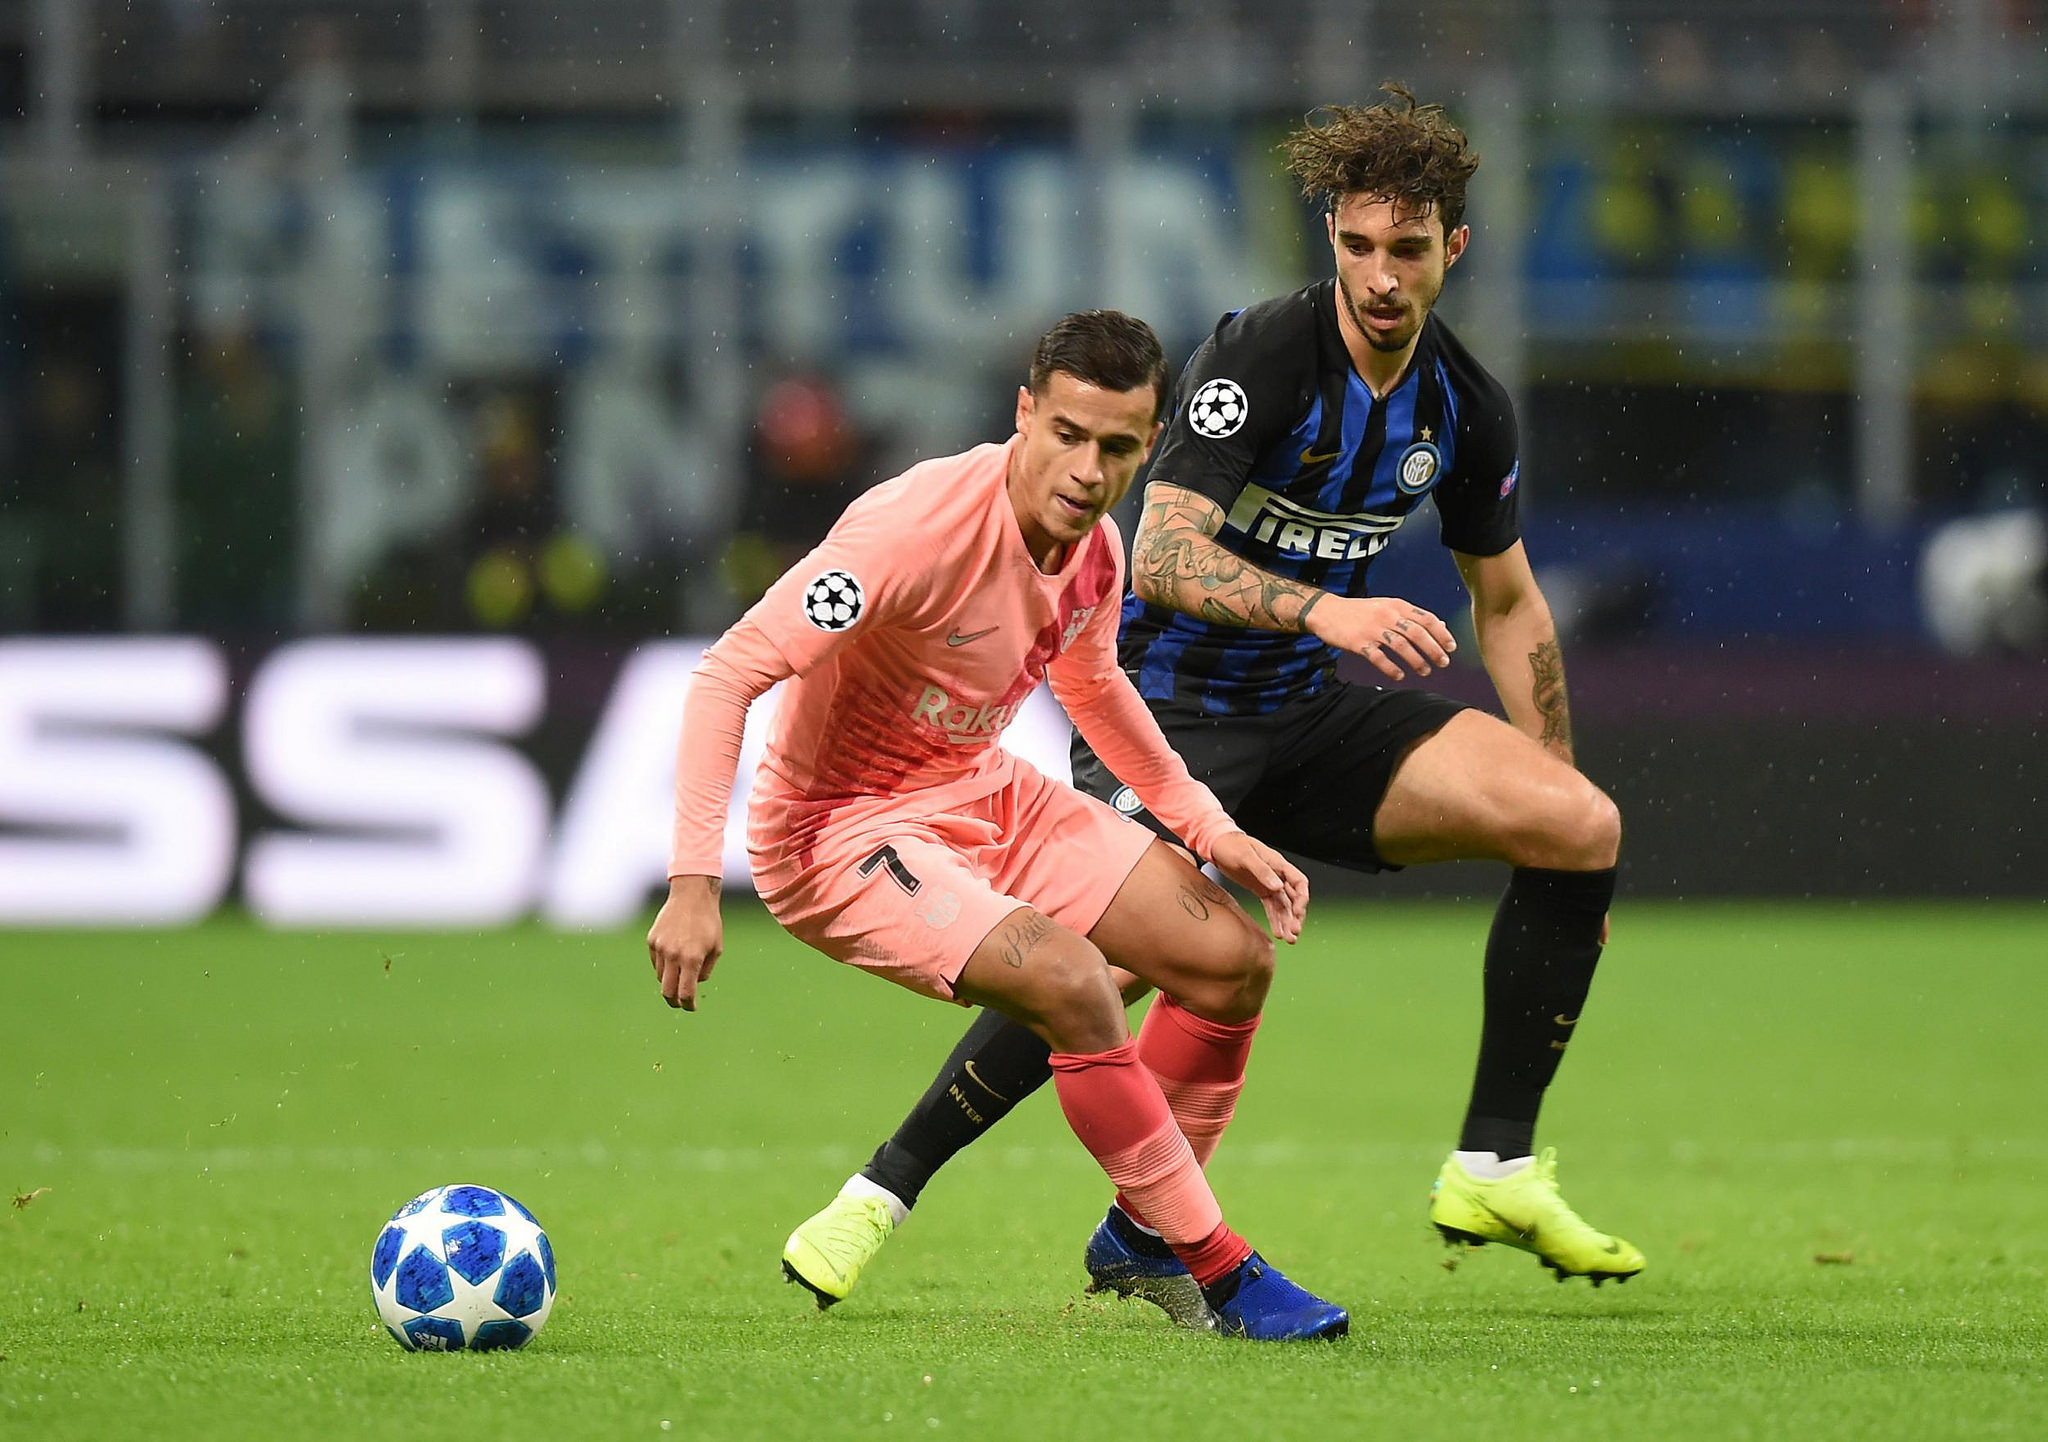 Inter And Barcelona Play Out 1-1 Draw